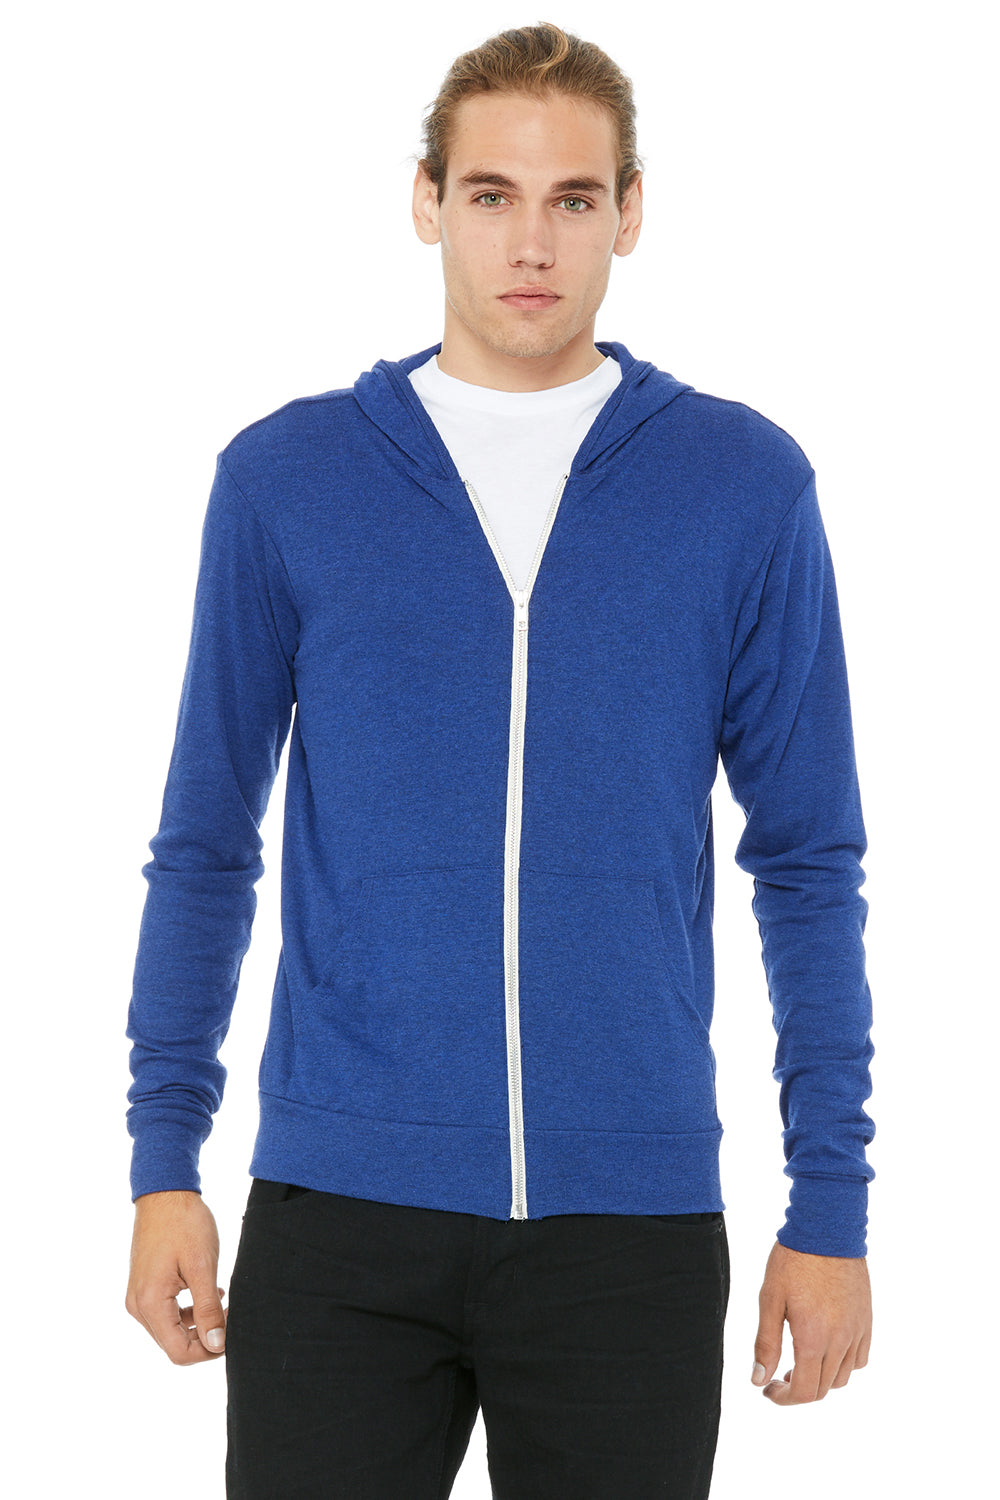 Bella + Canvas 3939 Mens Full Zip Long Sleeve Hooded T-Shirt Hoodie Royal Blue Front